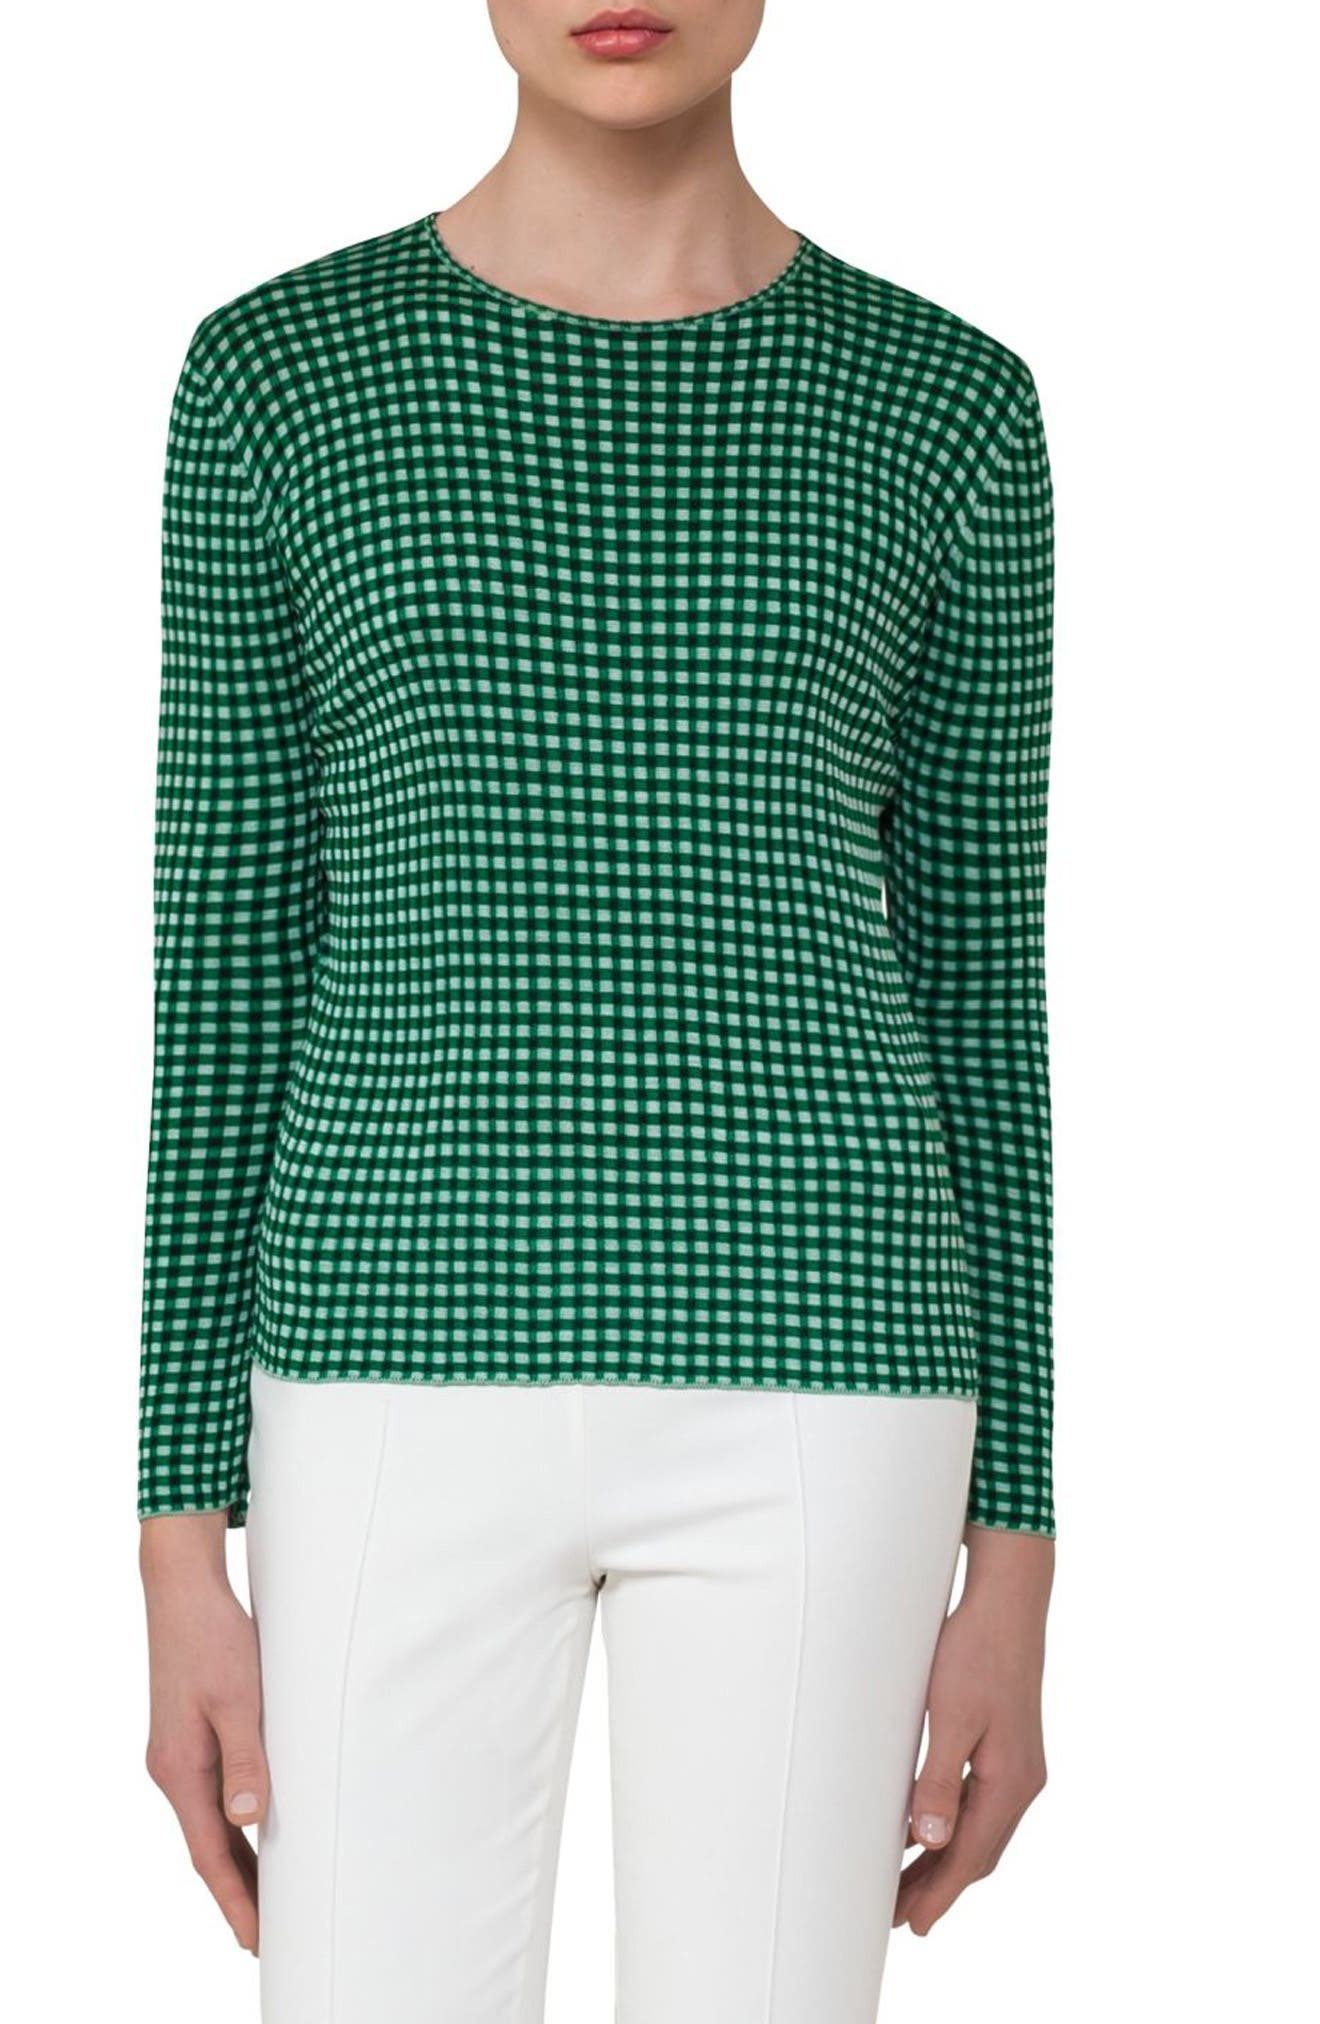 Akris Check Jacquard Knit Silk Top